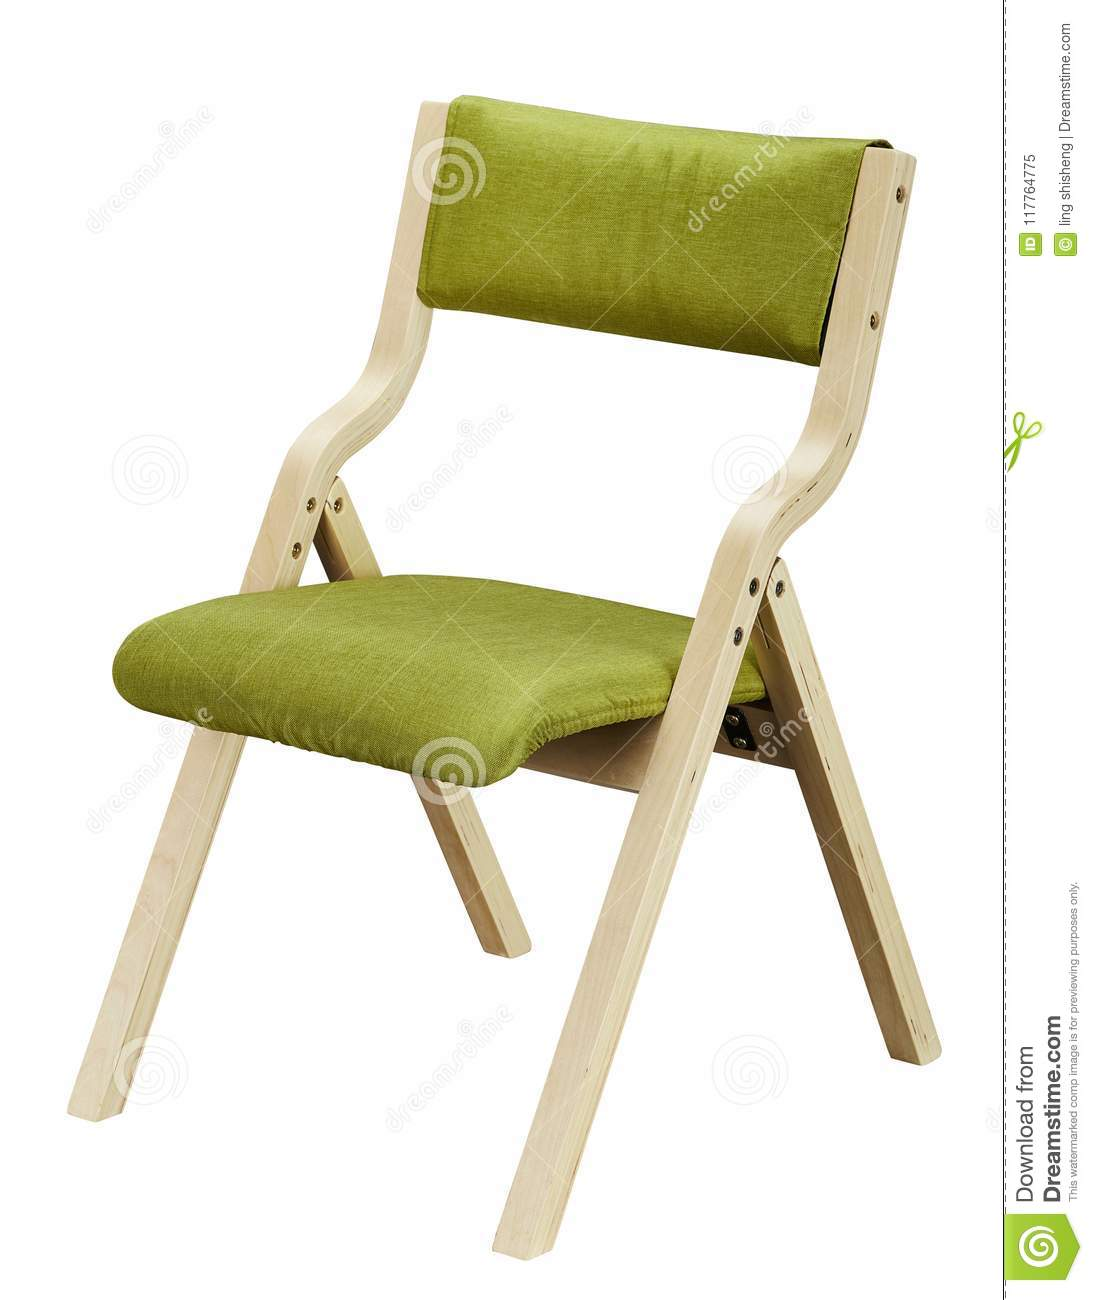 folding chair with cushion desk rug protector wooden stock image of seat 117764775 wrapped sponge its and backrest are green